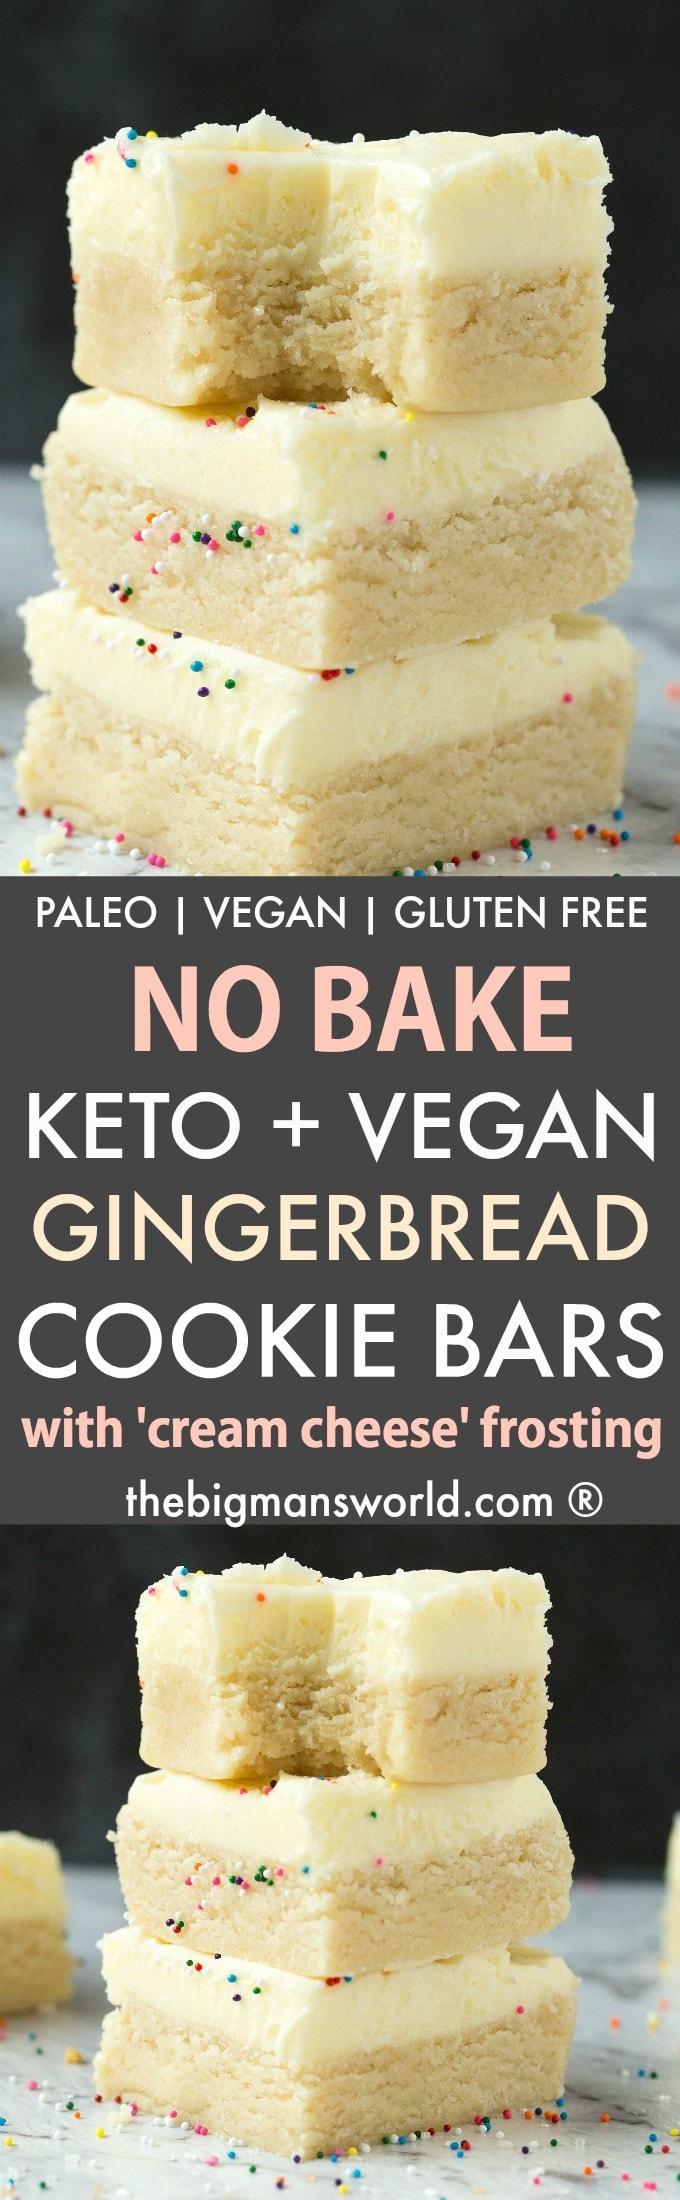 Healthy No Bake Gingerbread Cookie Bars topped with a creamy dairy free frosting.